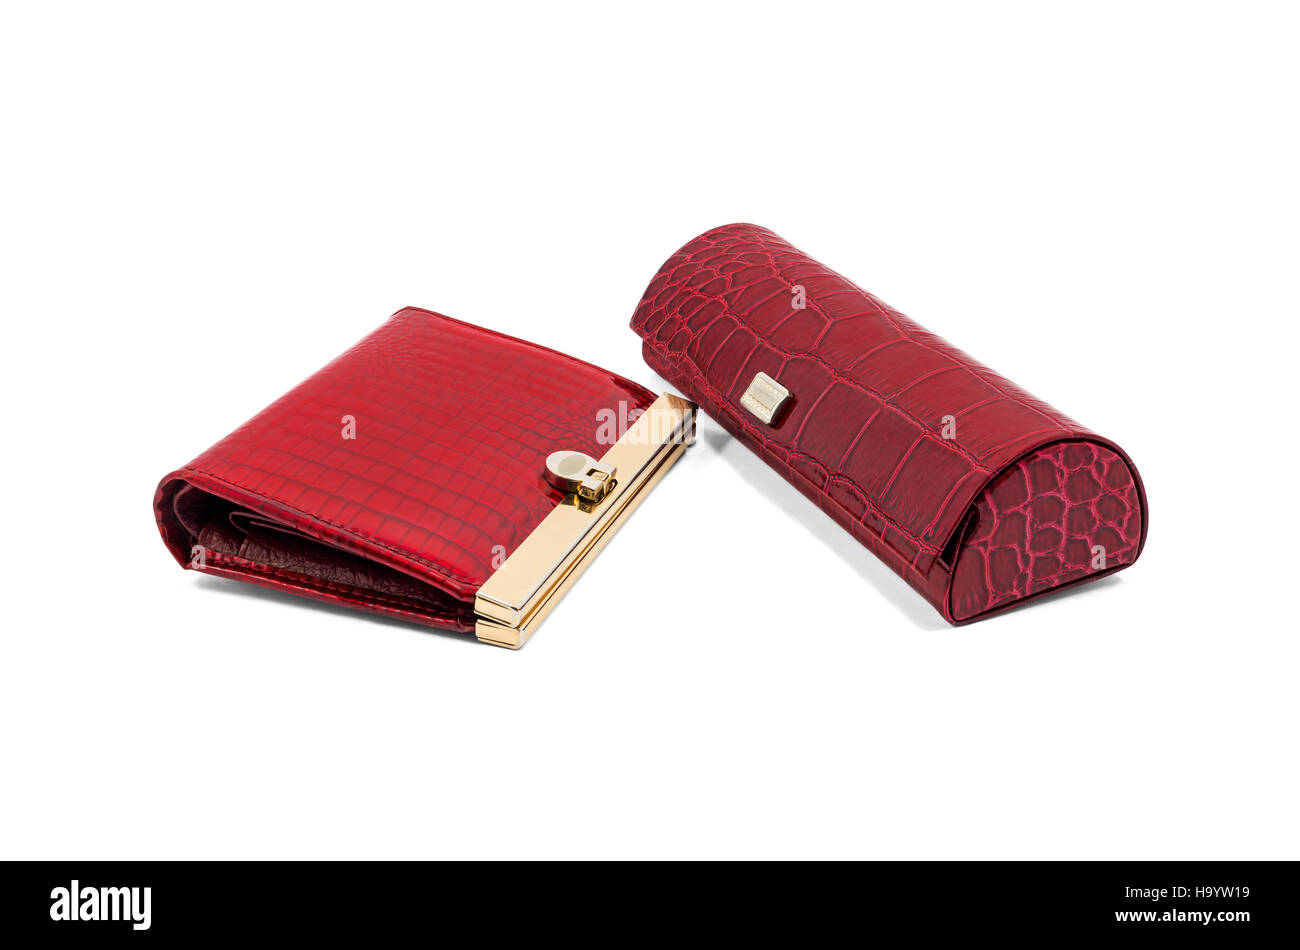 Red wallet and glasses case made of crocodile leather on a white background - Stock Image